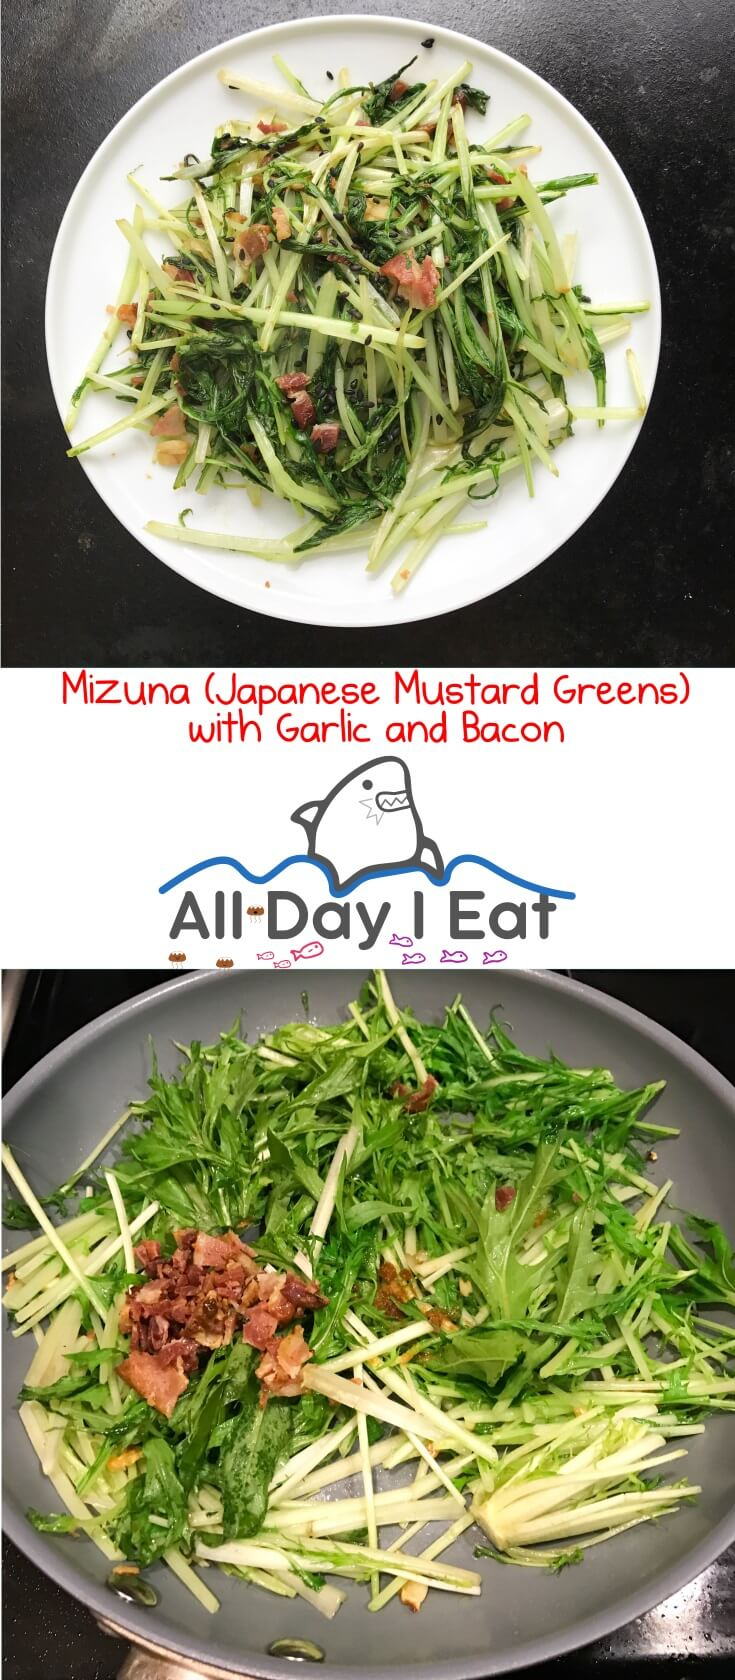 Mizuna (Japanese Mustard Greens) with Garlic and Bacon. A tasty way to get some more vegetables into your diet. | www.alldayieat.com